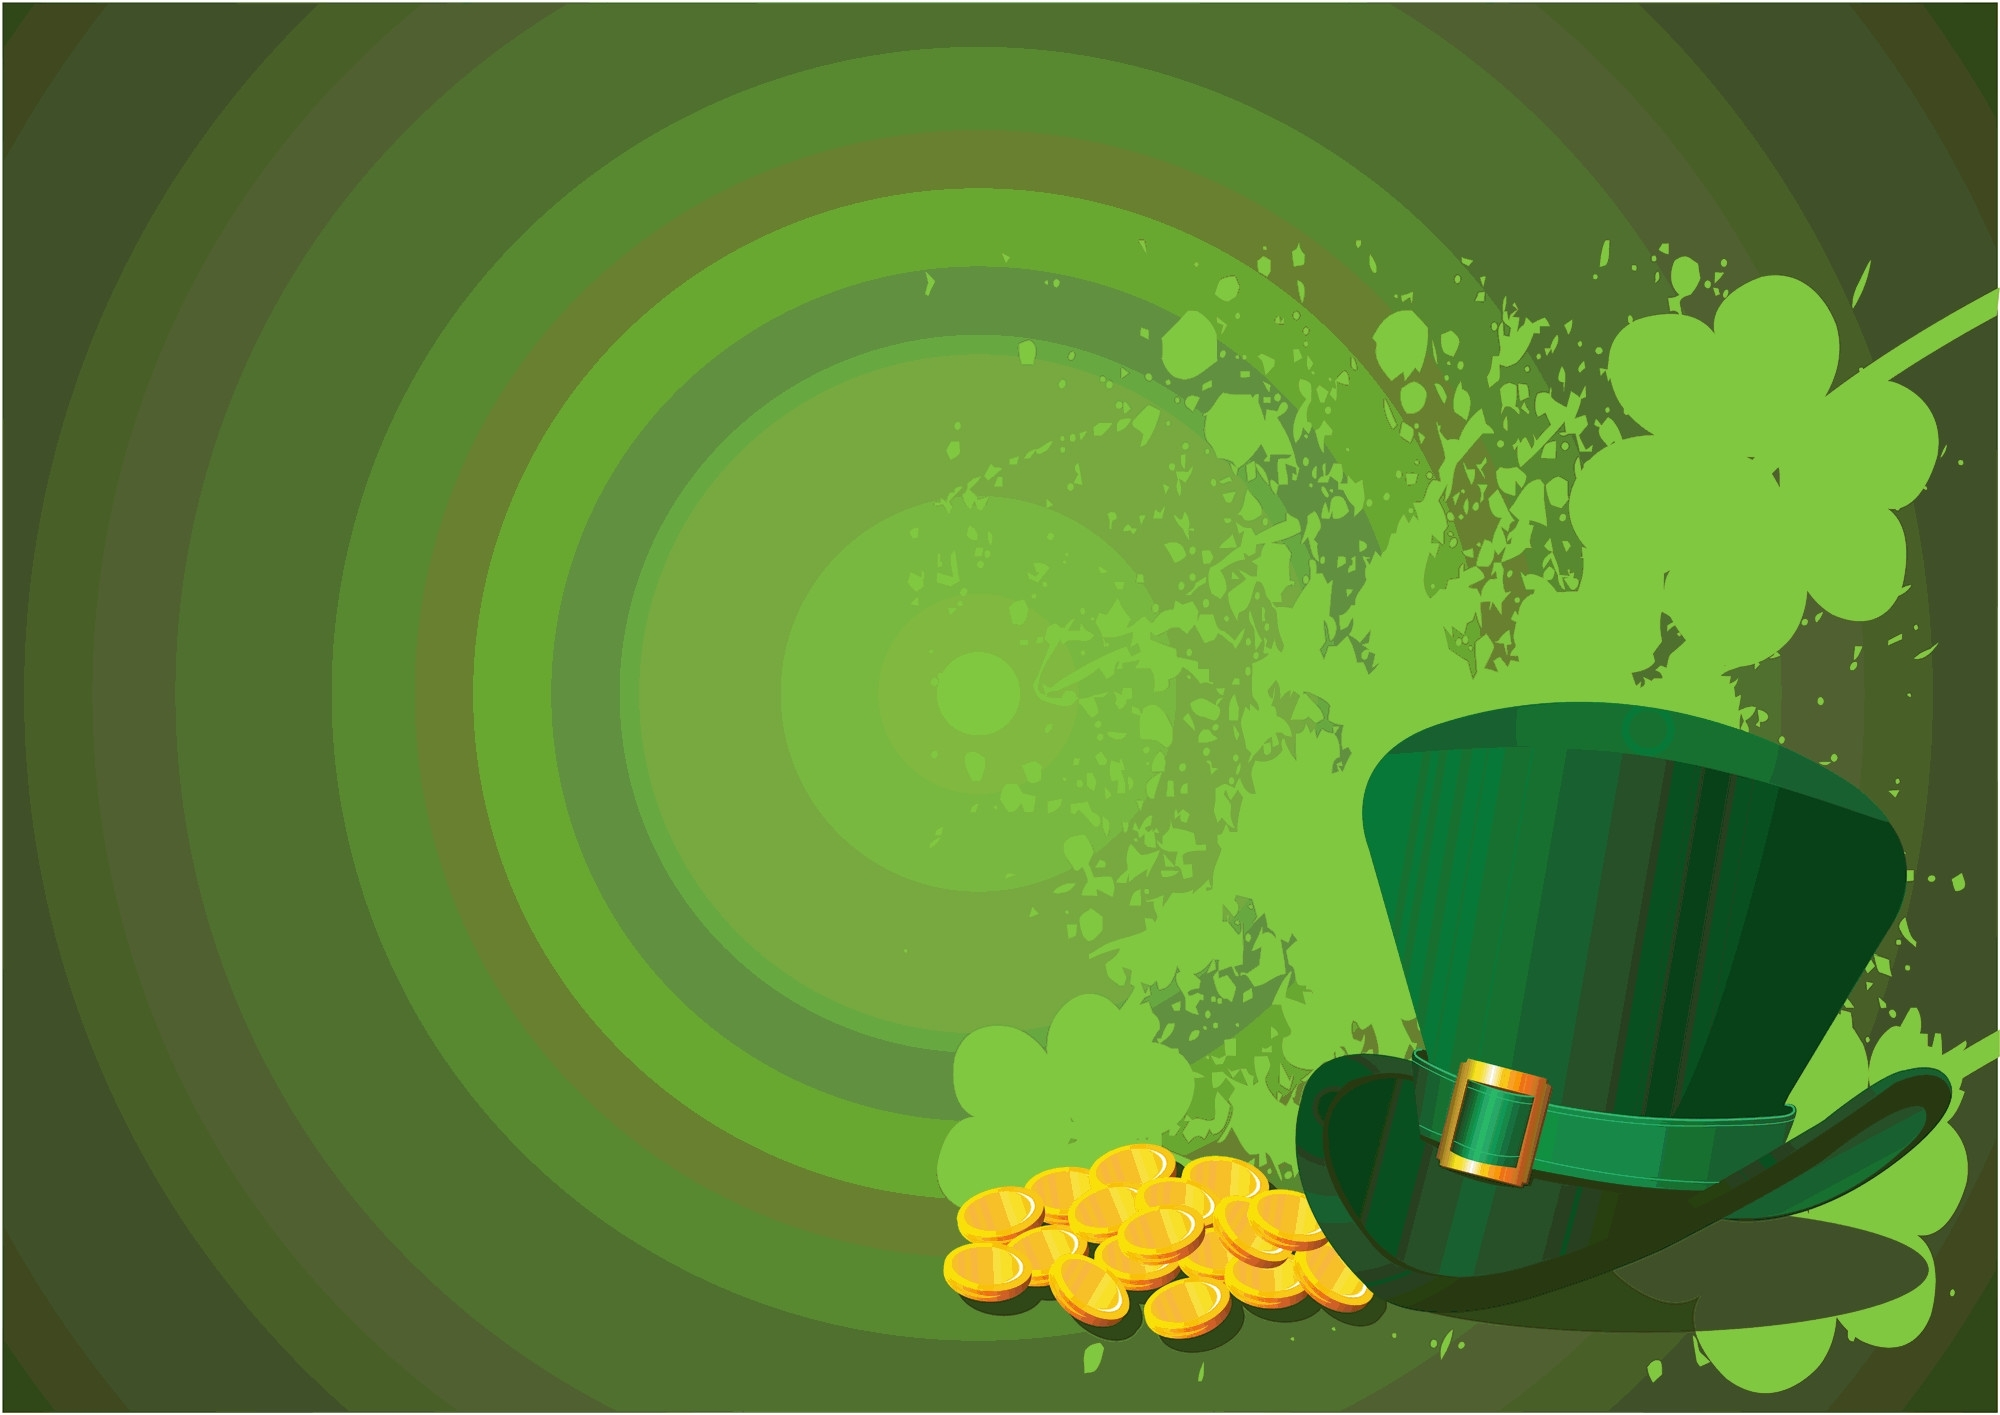 disney st patricks day wallpaper (56+ images)